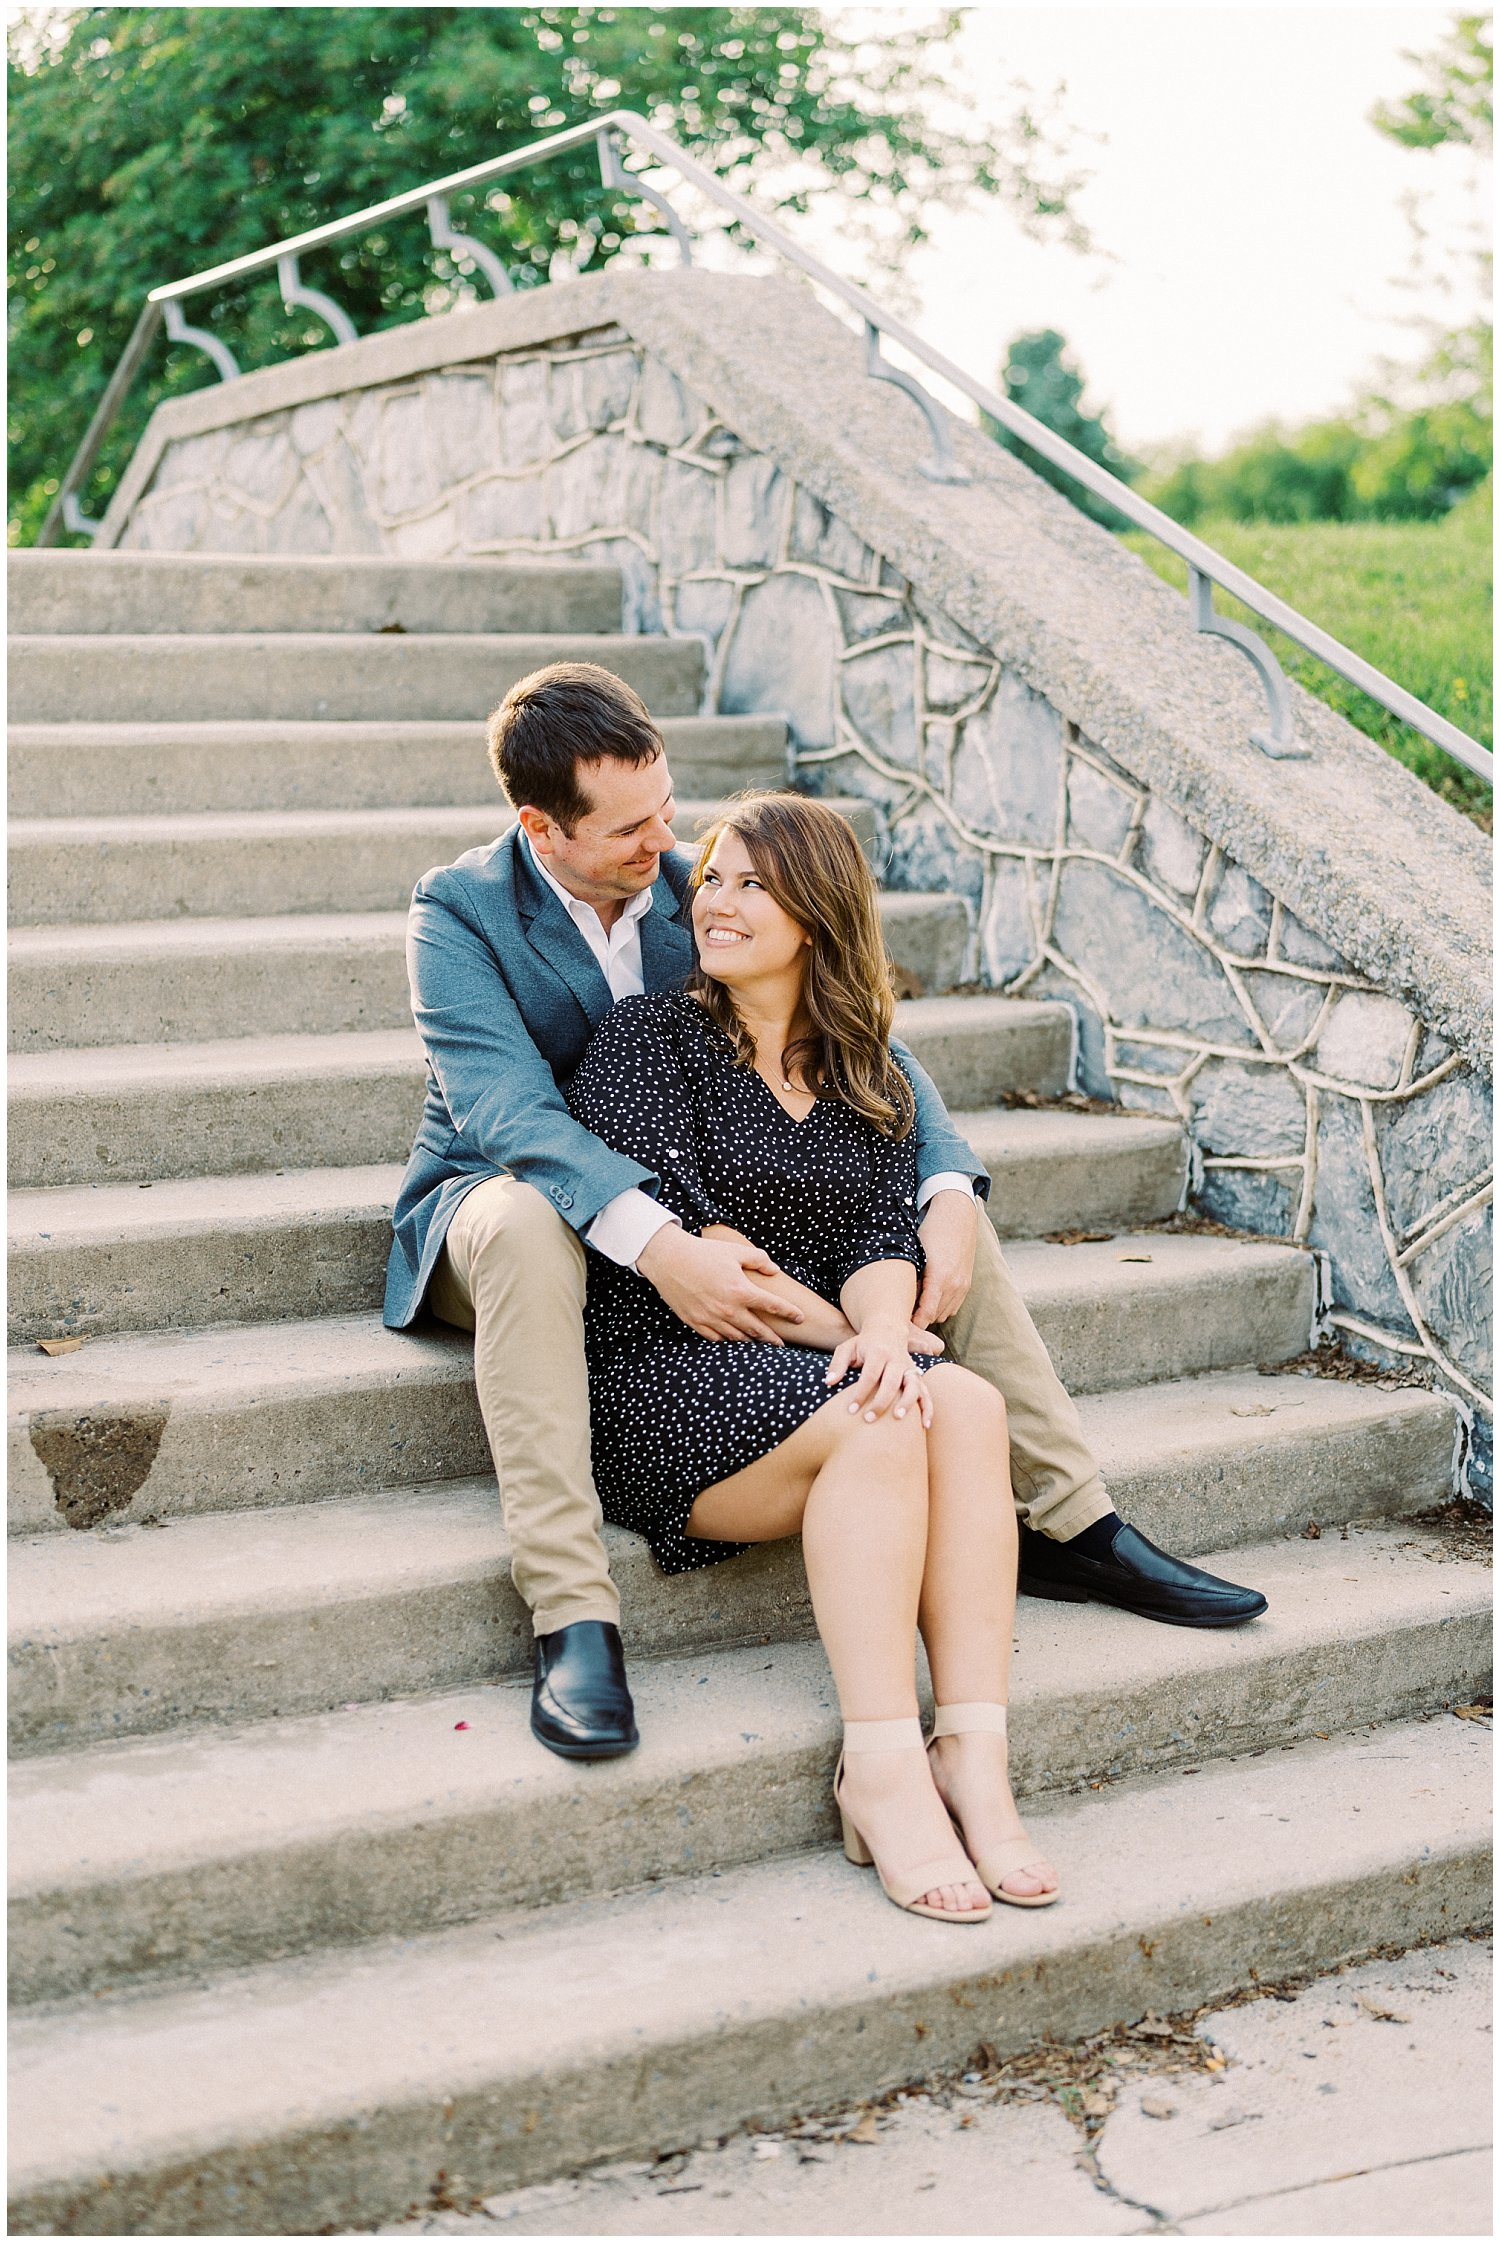 Downtown Frederick engagement session captured by Winnie Dora Photography